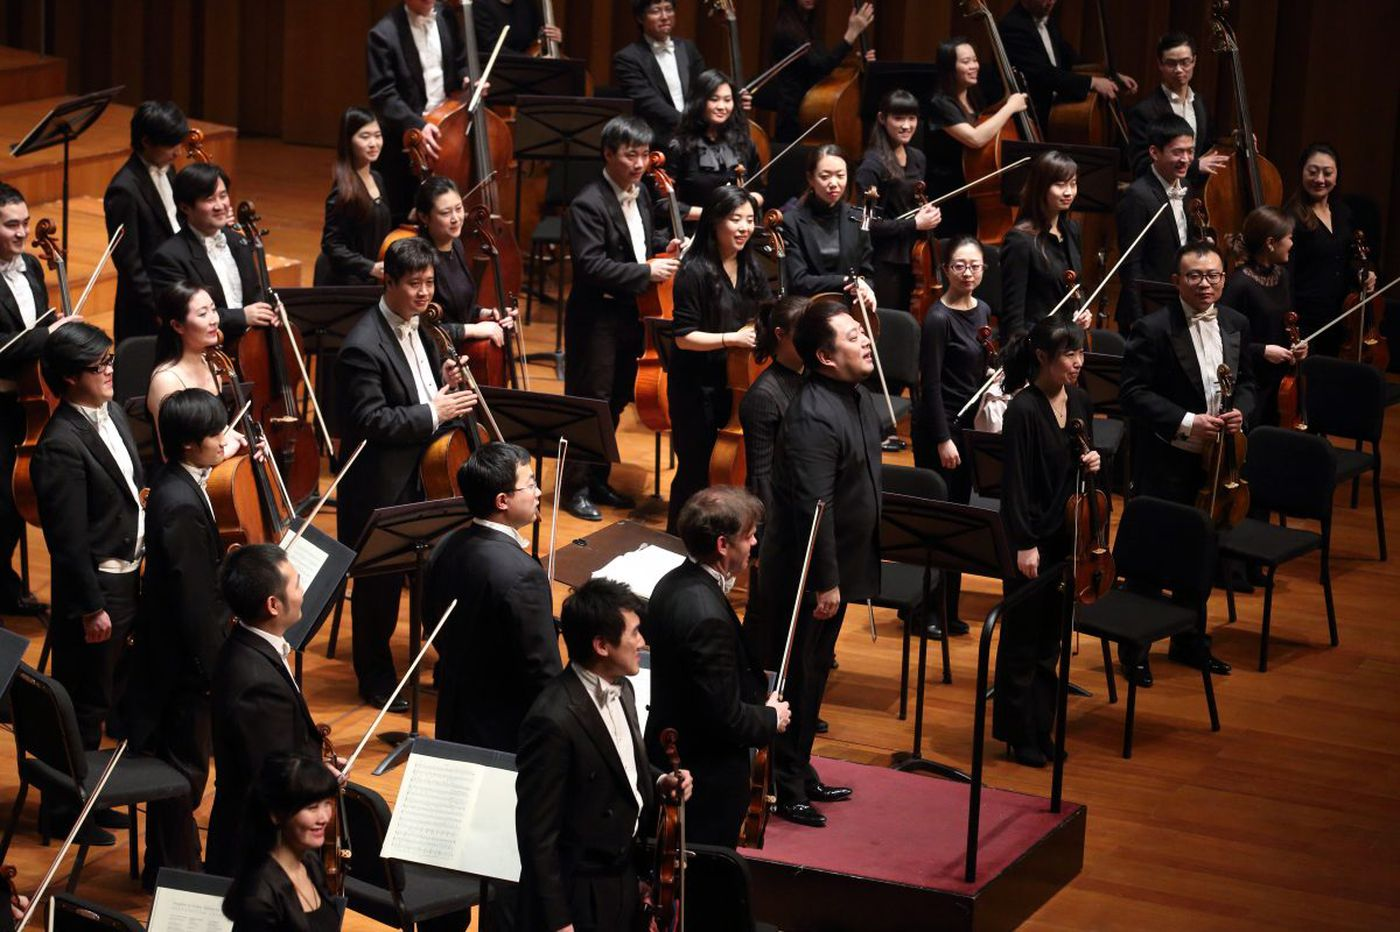 Chinese orchestra shows a rich new sound - and a flair for outreach